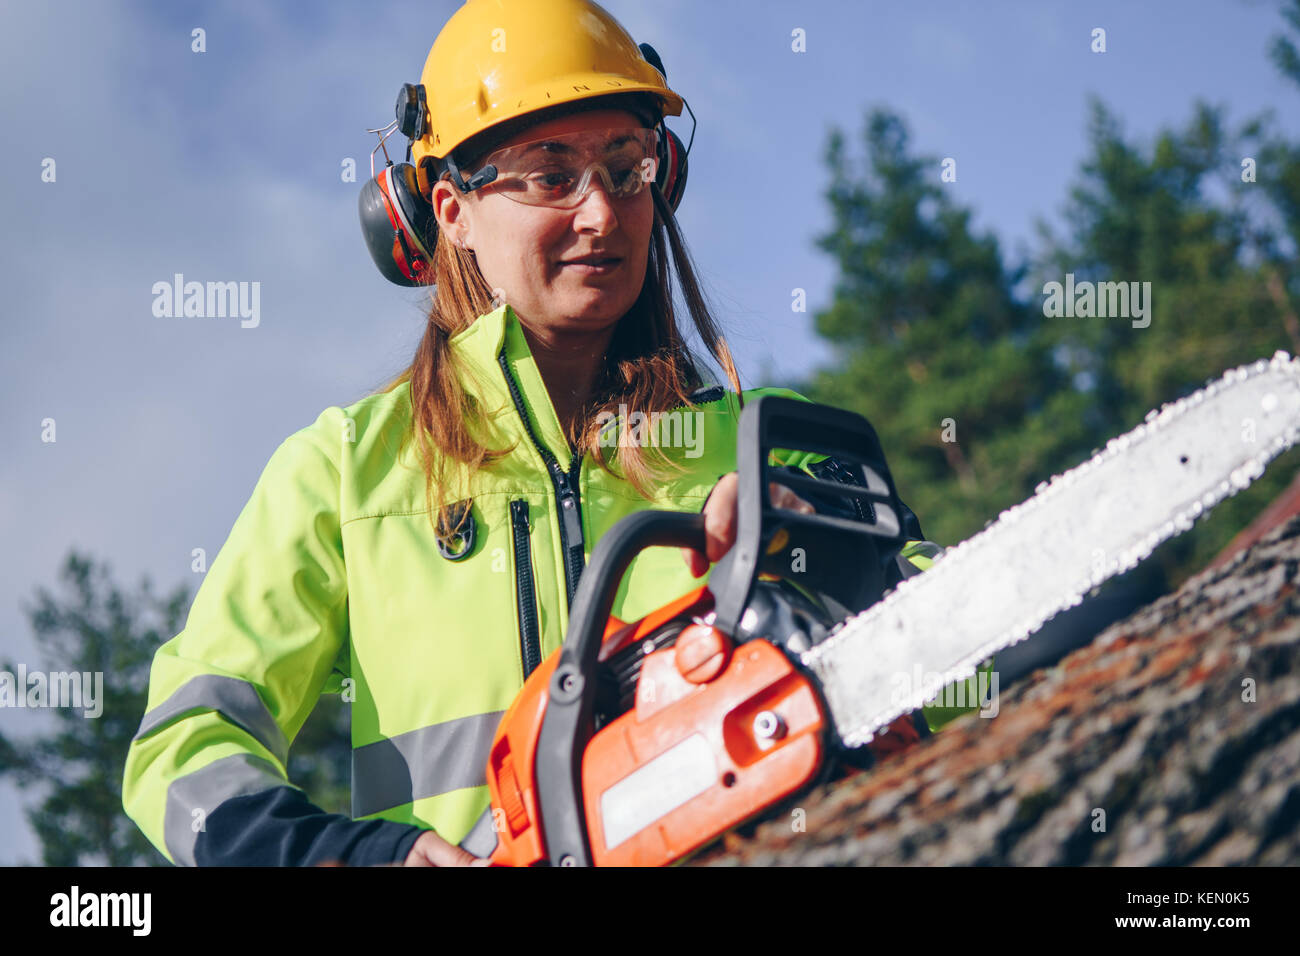 Woman operating chainsaw while wearing safety gear - Stock Image